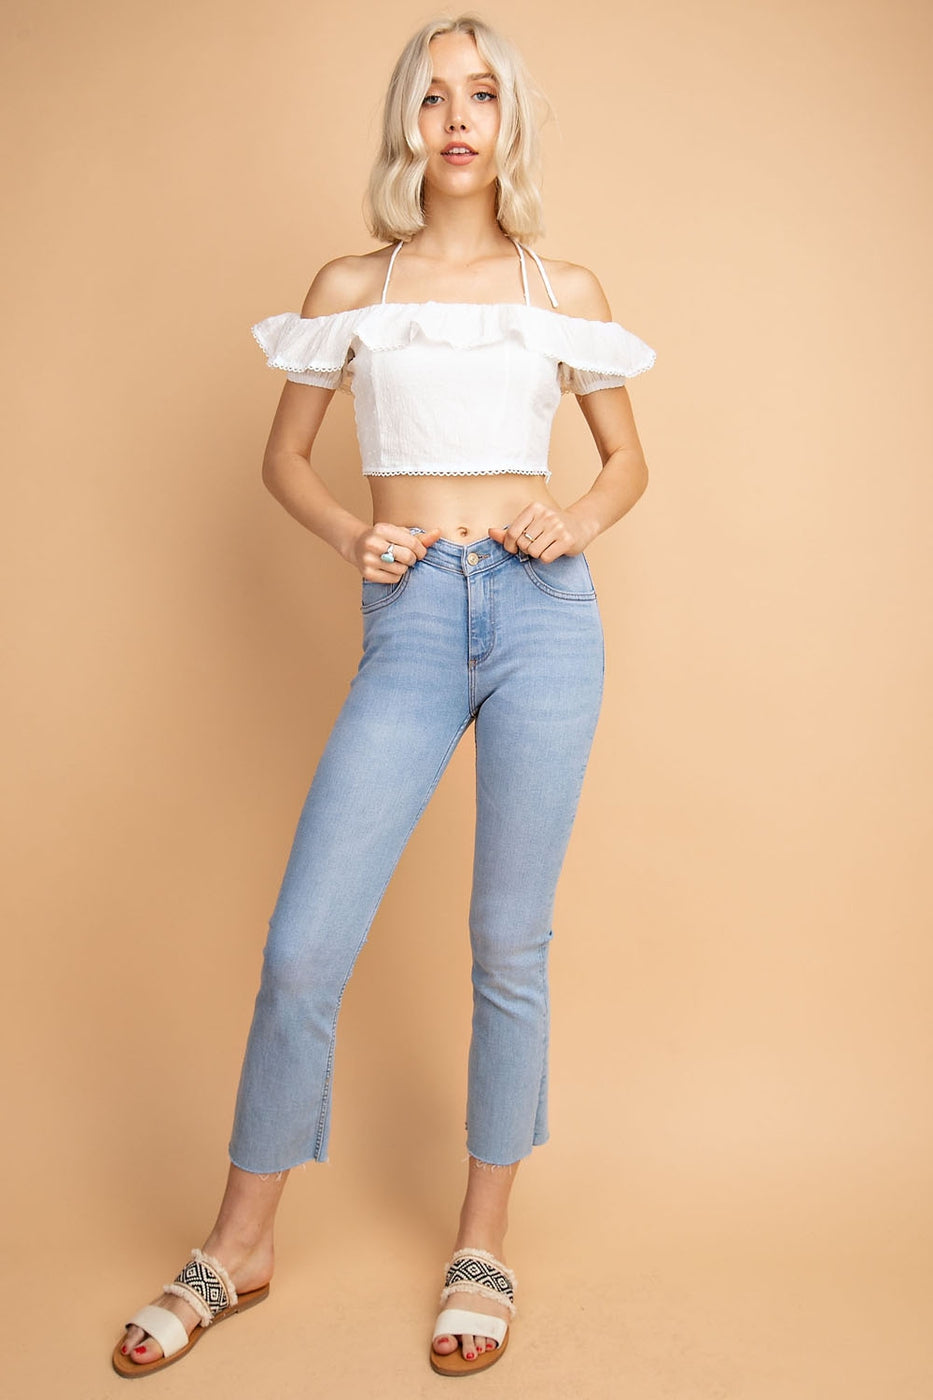 Angelic White Shoulder Sleeve Top - Siin Bees